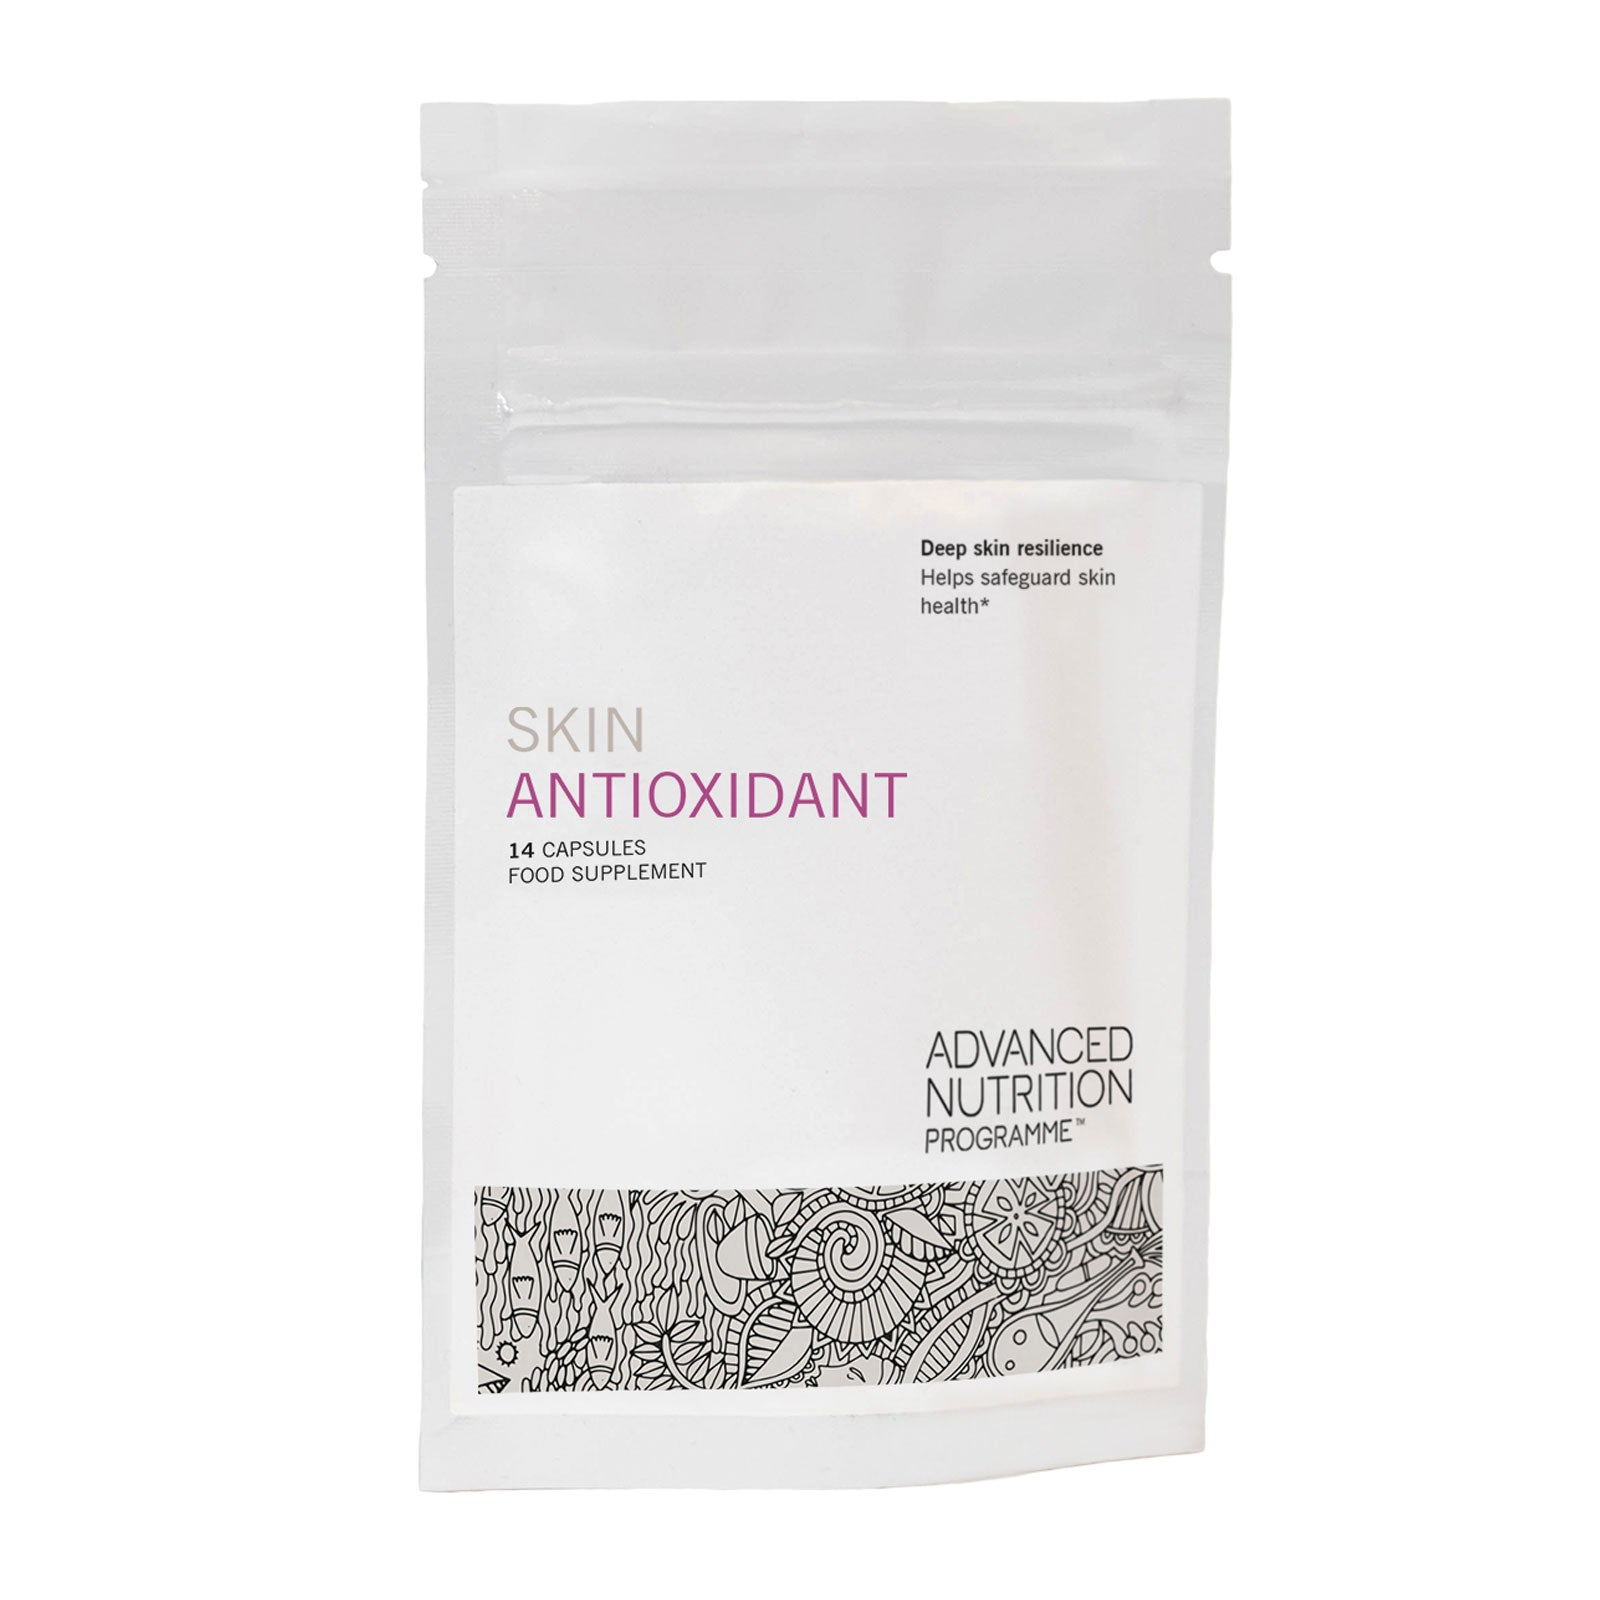 Advanced Nutrition Programme™ Skin Antioxidant Food Supplement x 14 Capsules